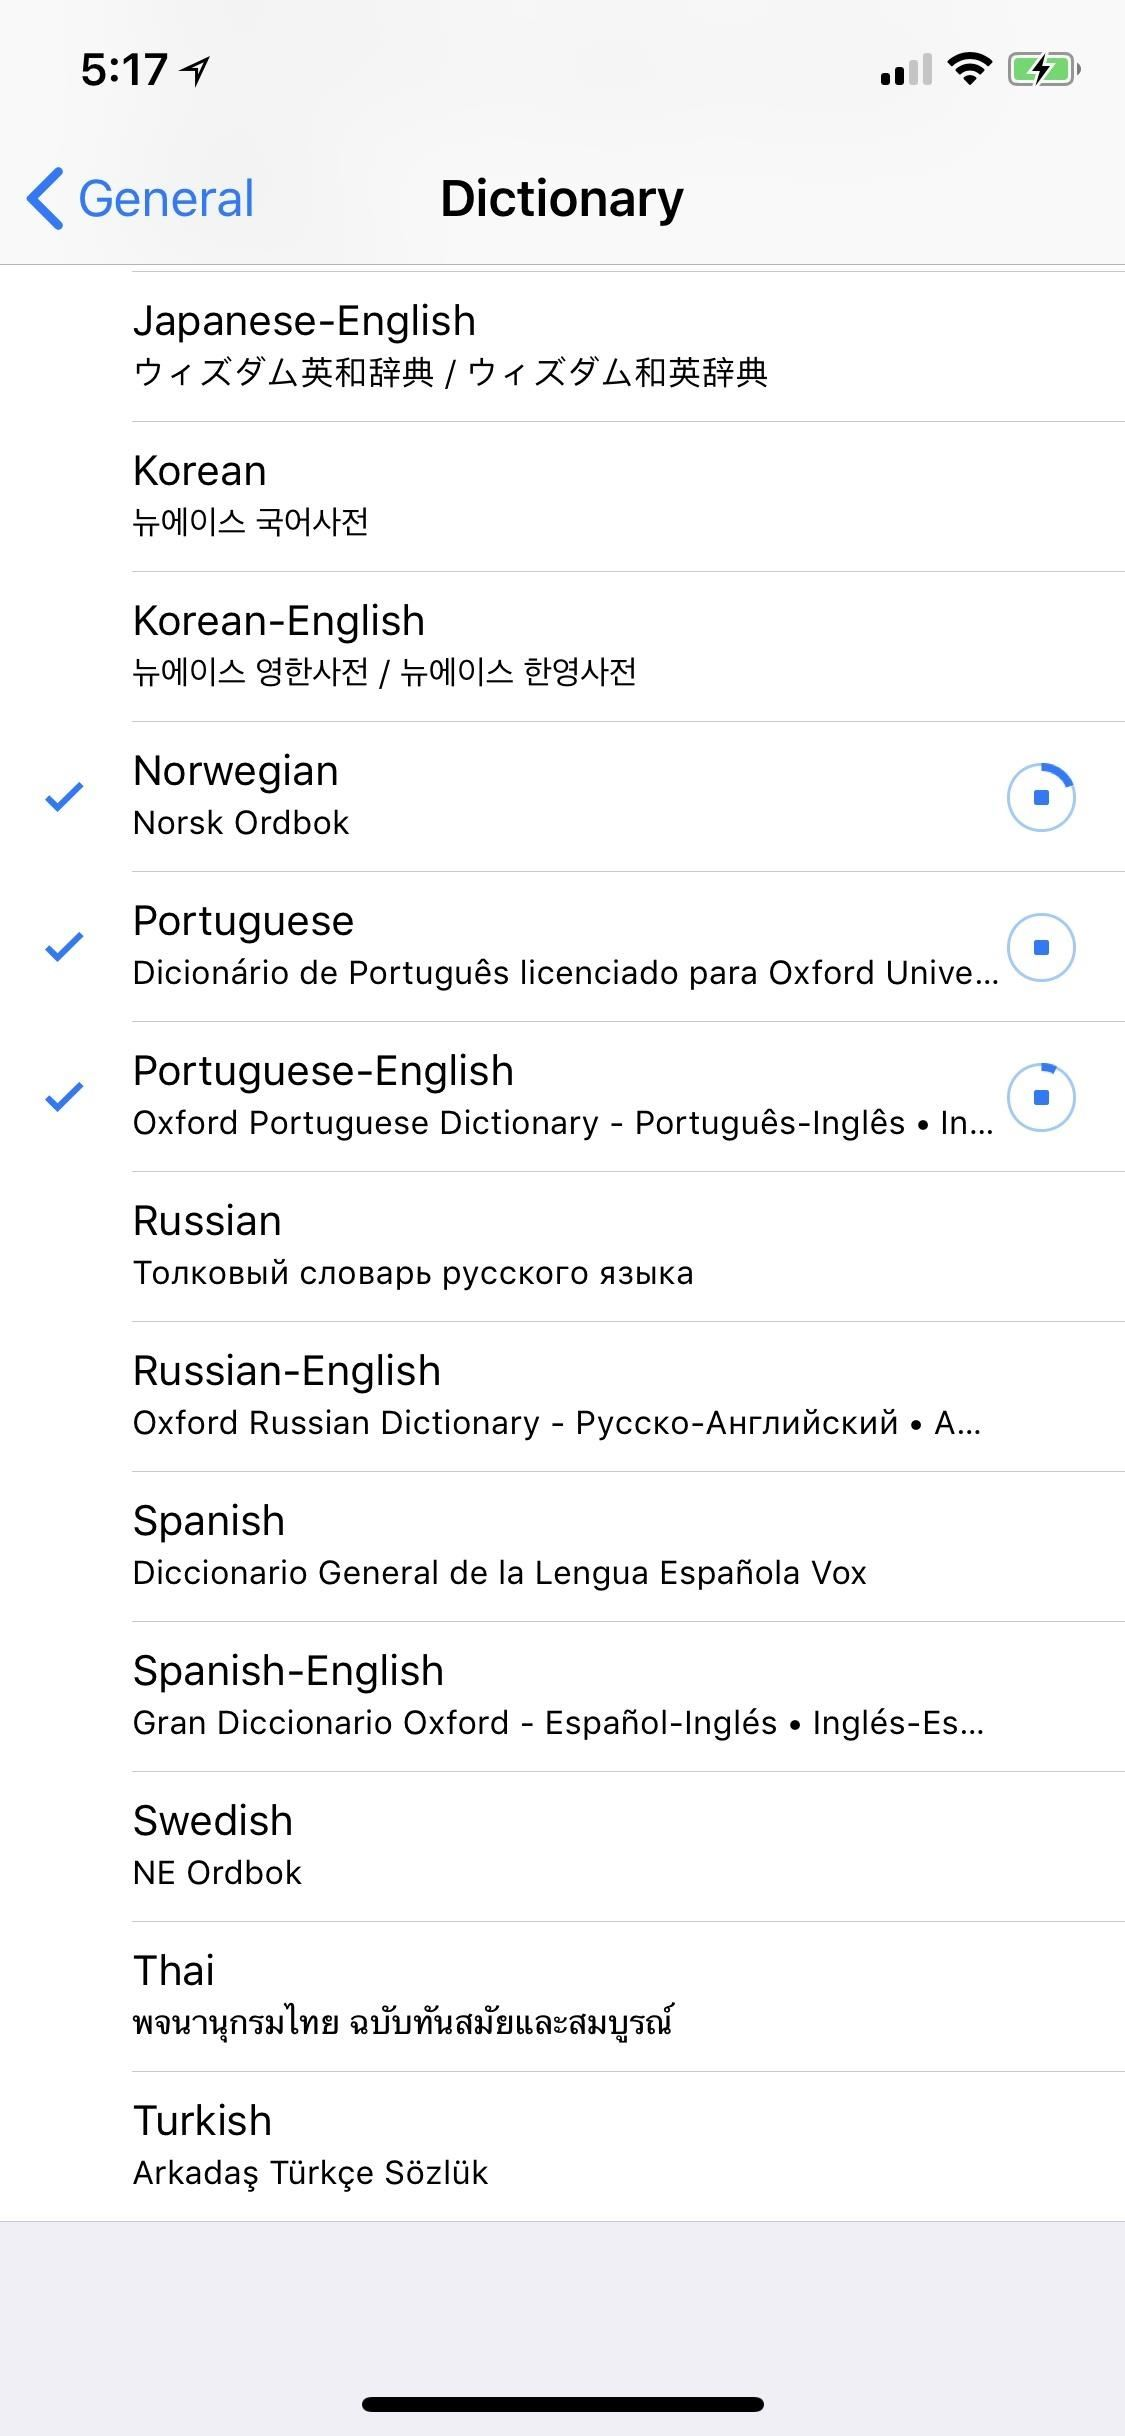 How to Add Foreign Language Dictionaries to Your iPhone to